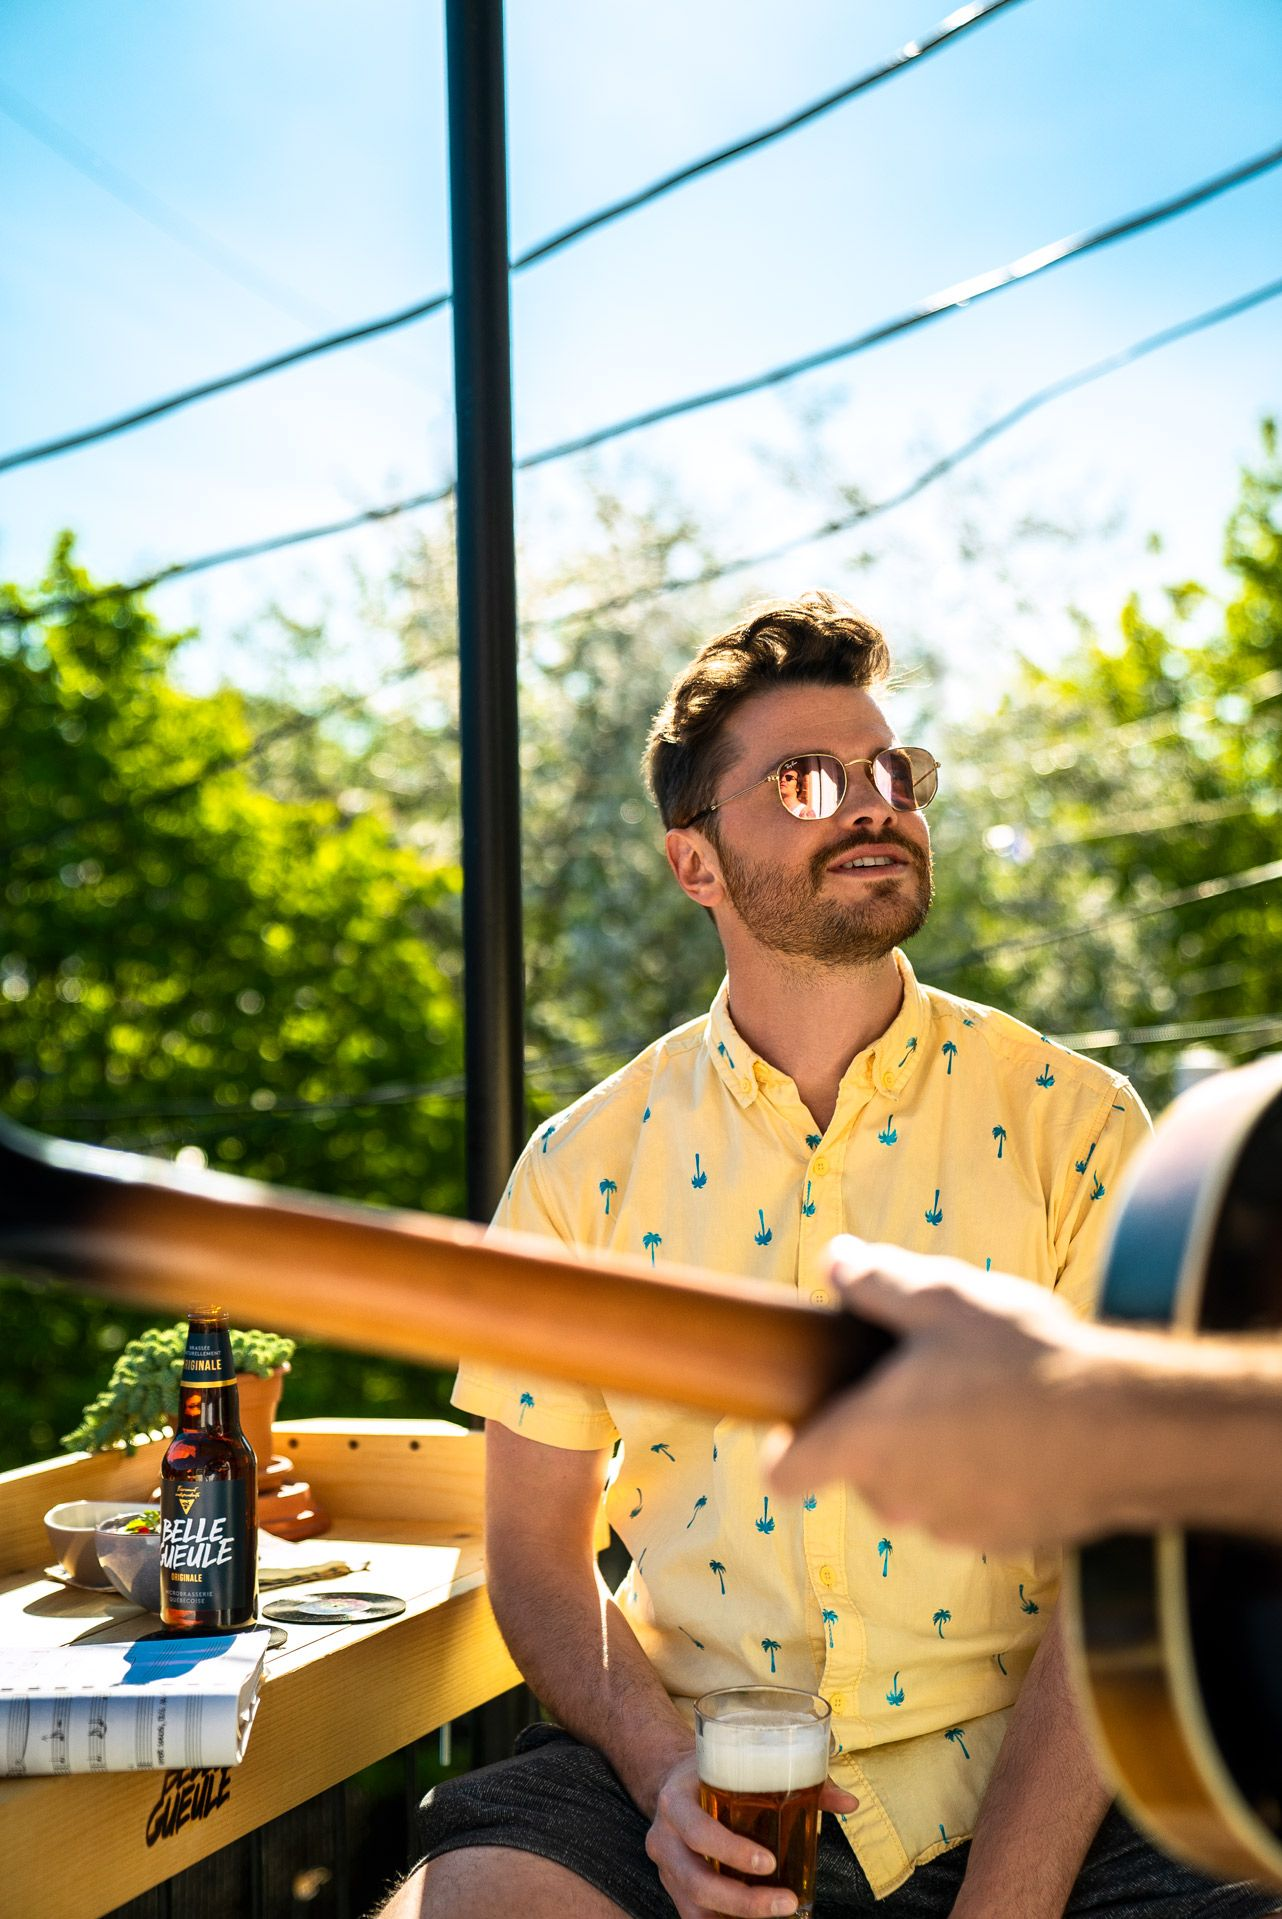 bearded man holding glass of beer in his hand laughing wearing yellow shirt patterned with blue palm trees sitting next to balcony bar attachment photographed by Bruno Florin for Belle Gueule with Forsman & Bodenfors